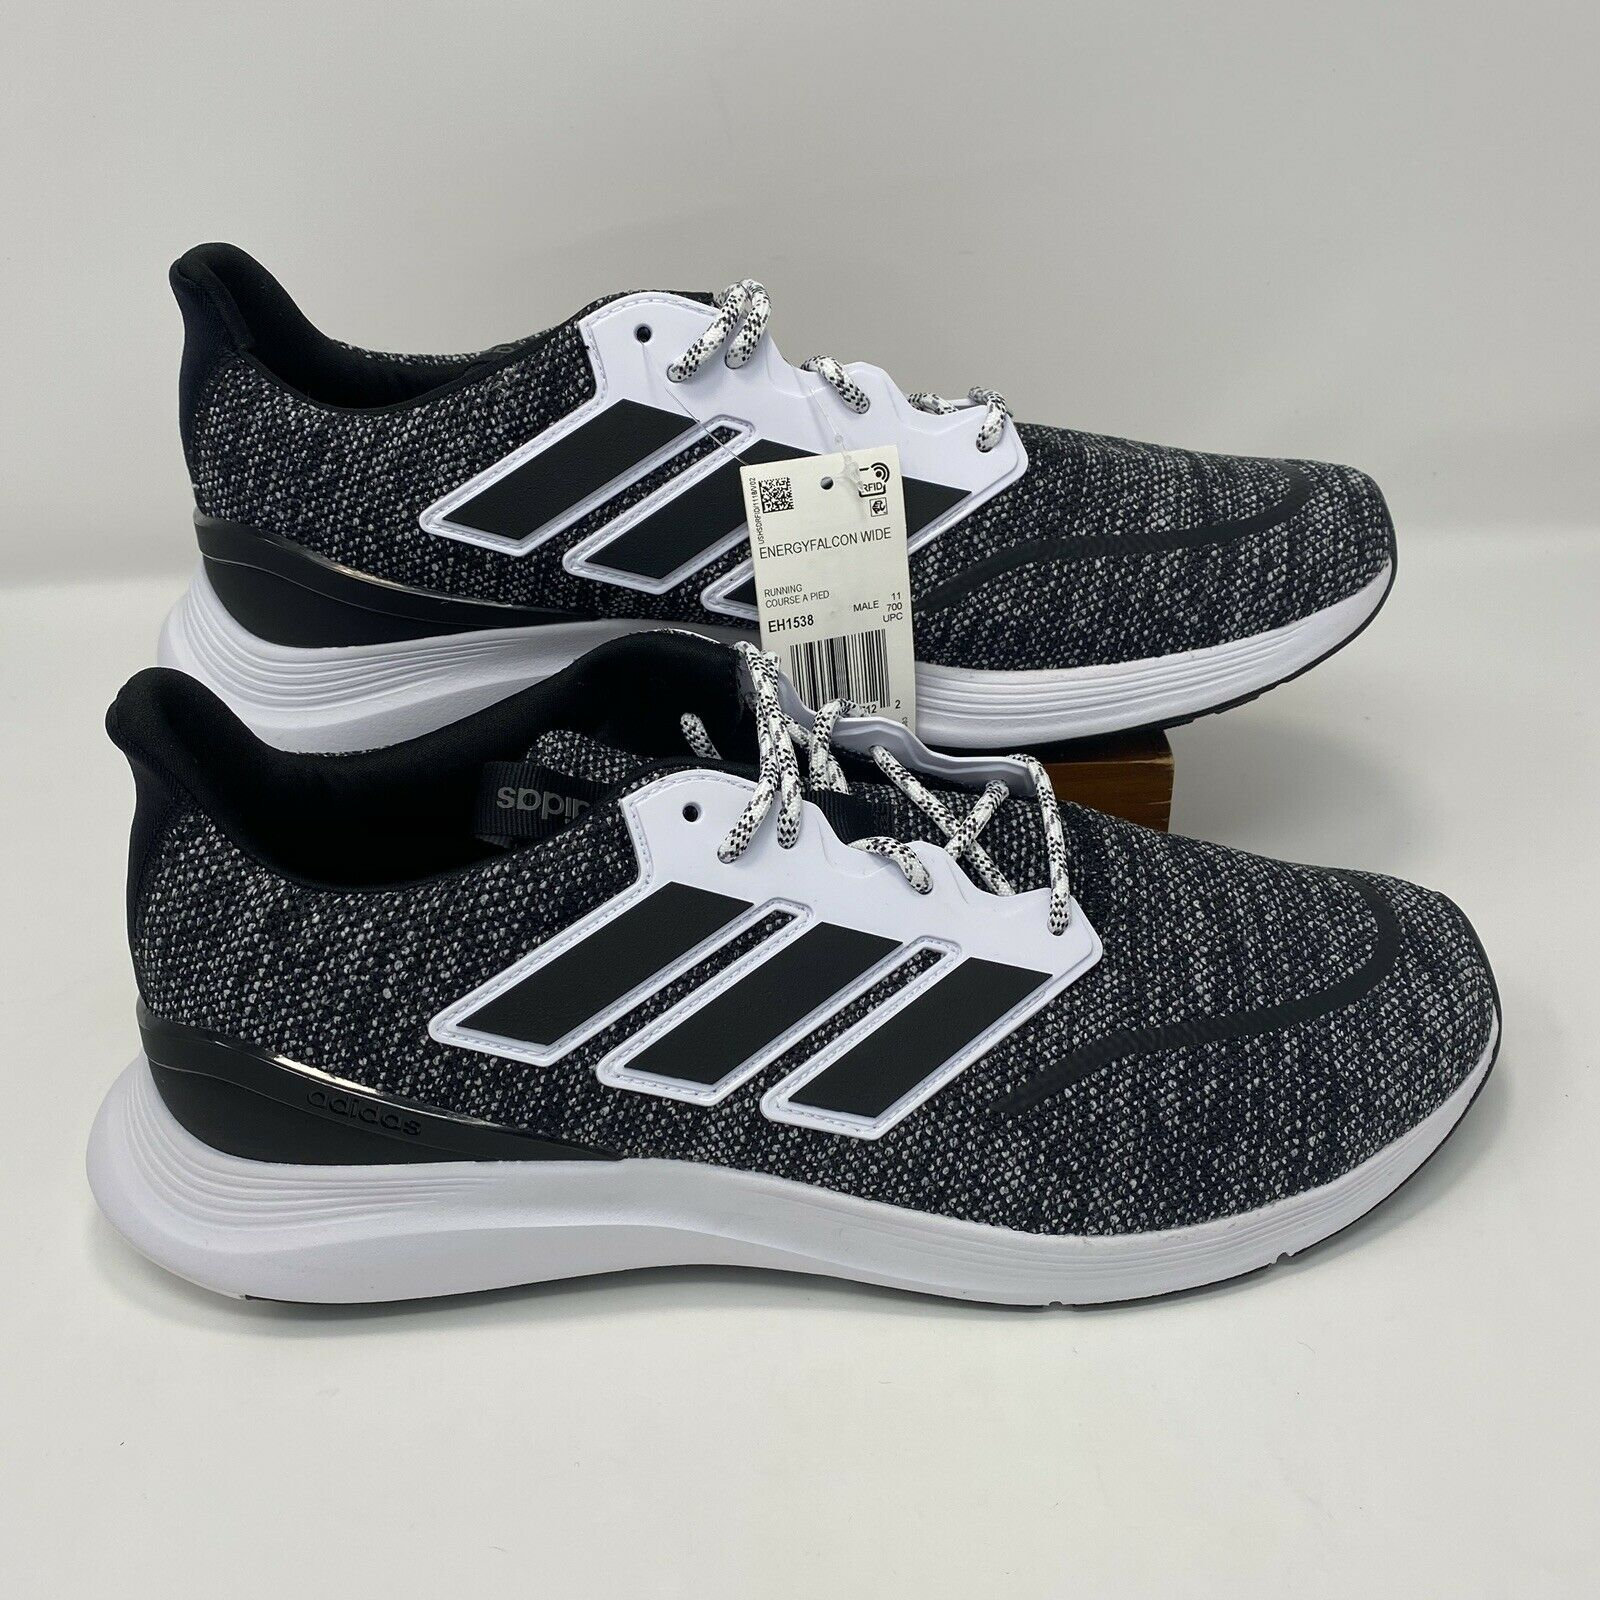 New Adidas Energyfalcon Wide EH1538 Sneakers Mens Size 11.5 black white oreo